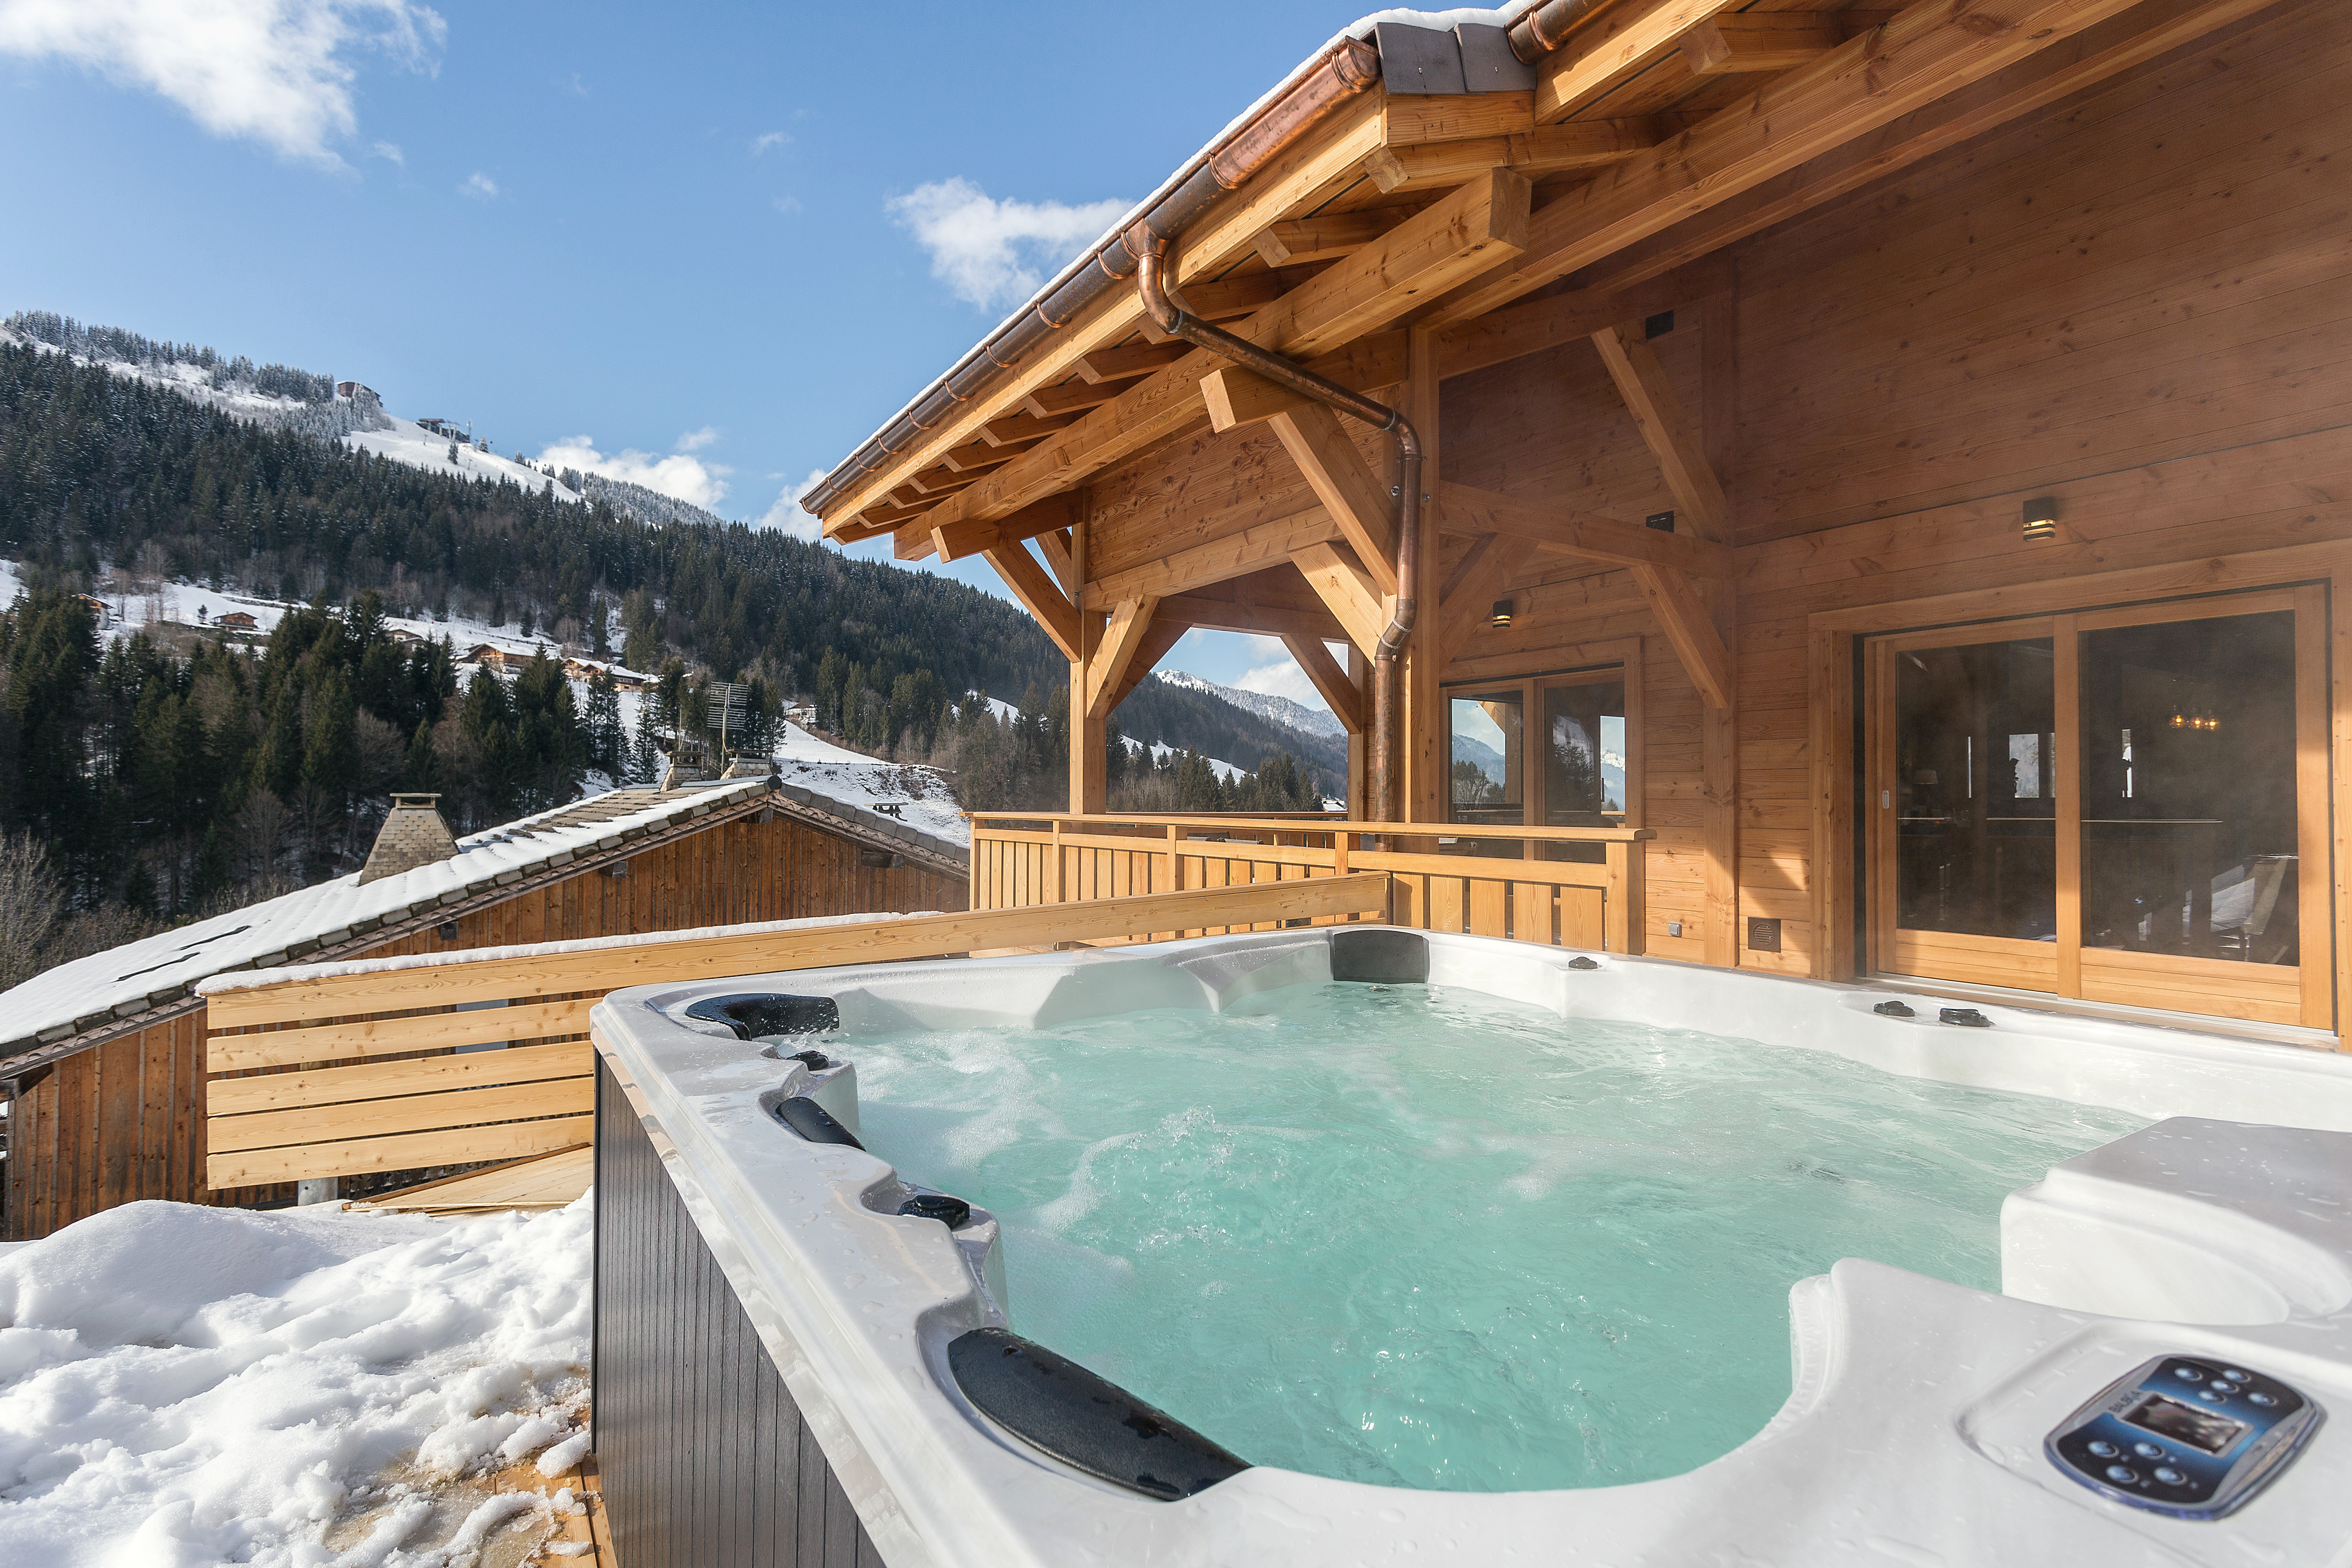 Luxury Ski Chalet Morzine  QA with More Mountain  The